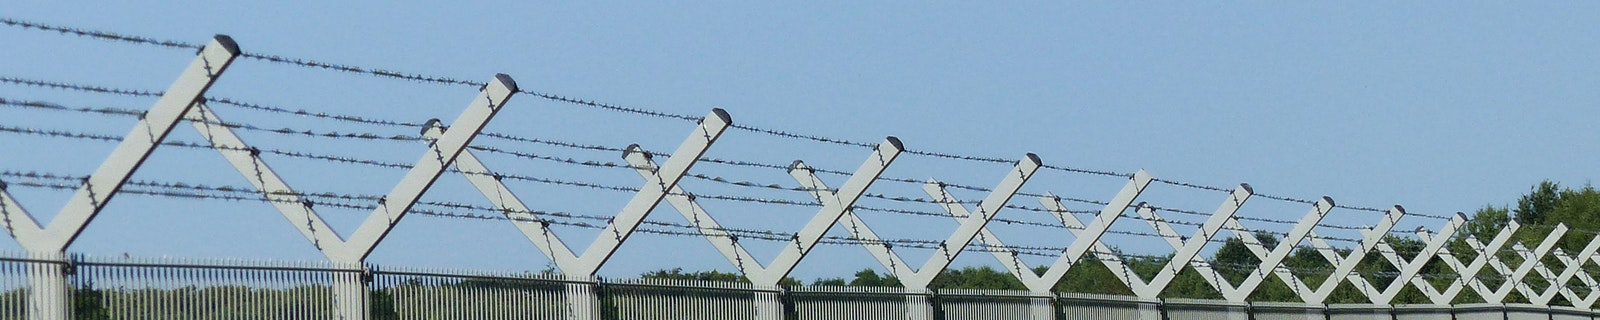 Security fence of an airport